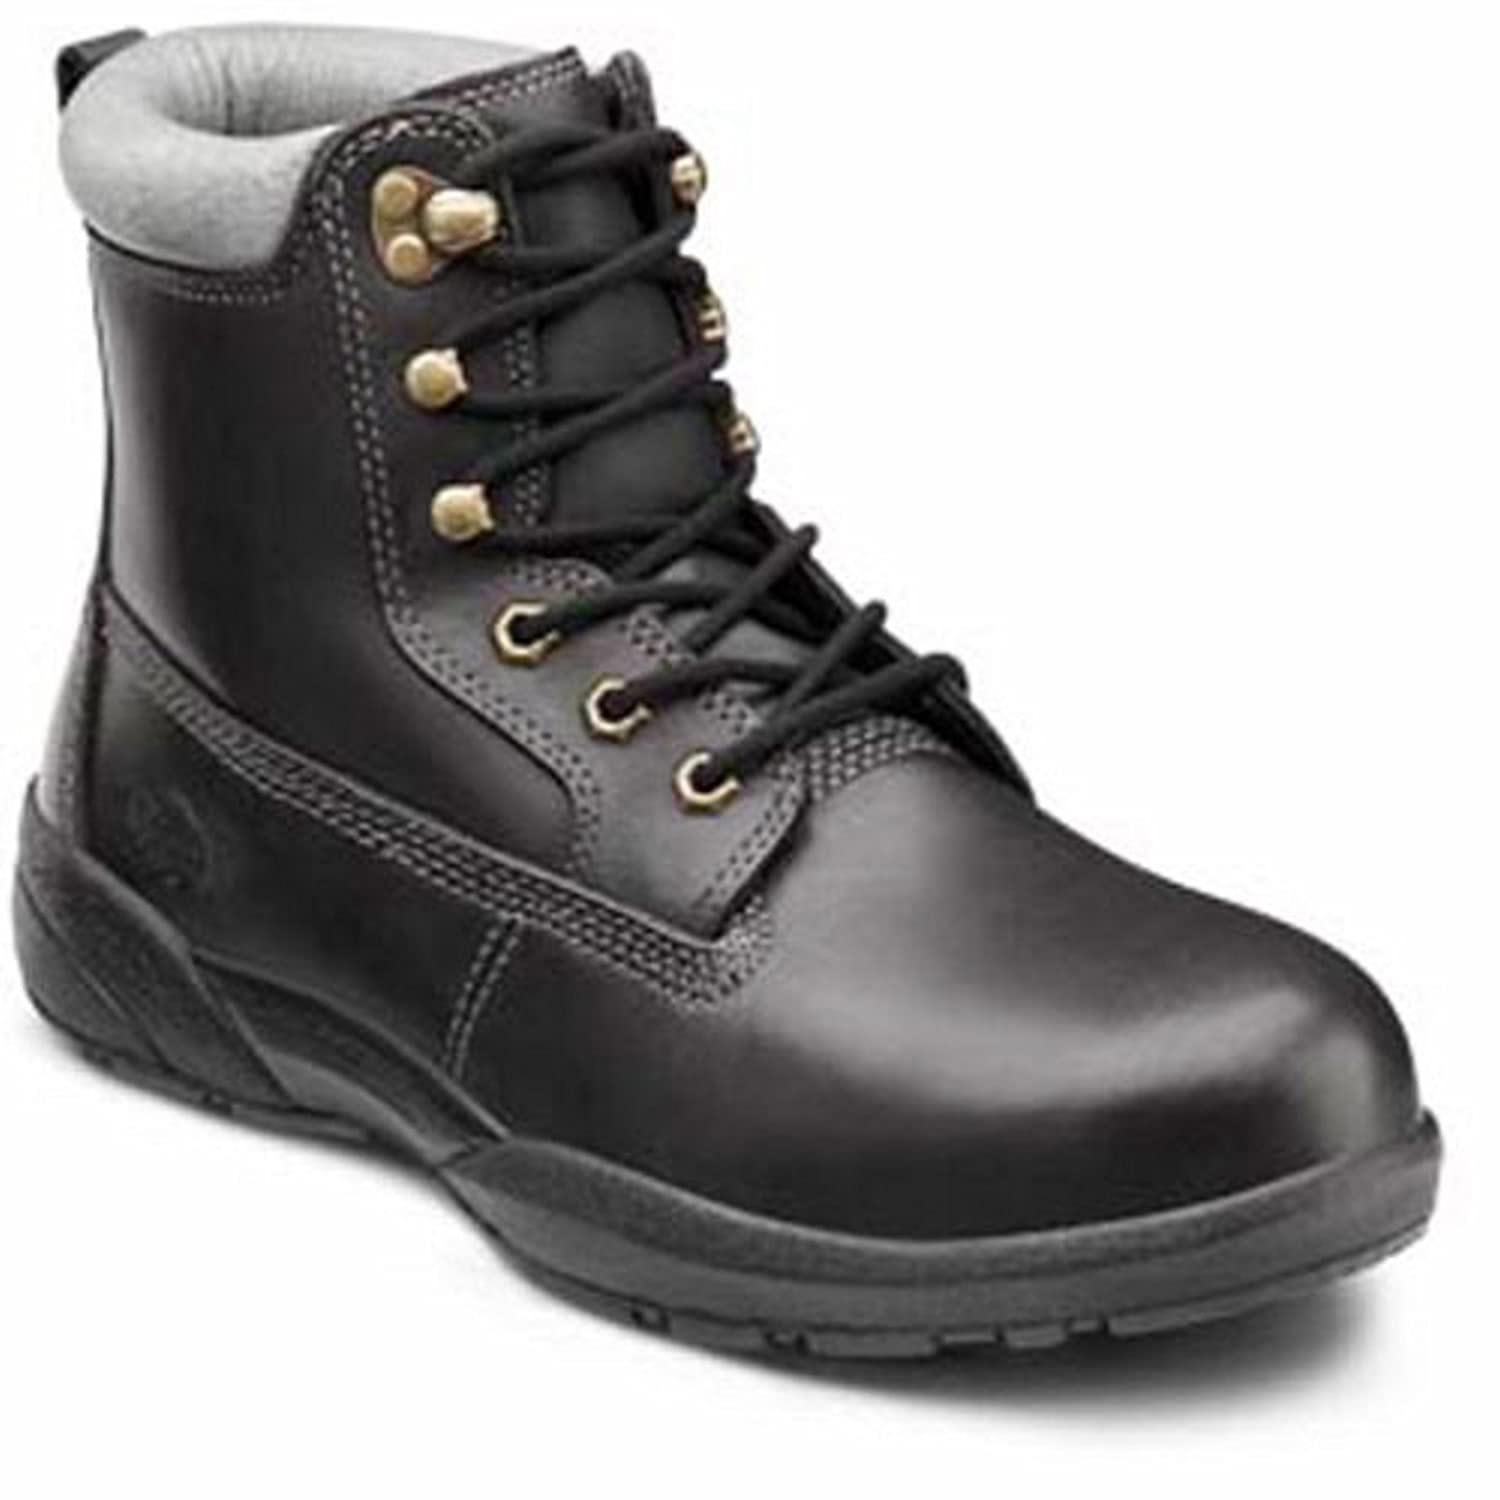 Dr. Comfort Men's Protector Black Steel Toe Diabetic Boots 11.5 Wide (E/2E) Black Lace US Men|Black